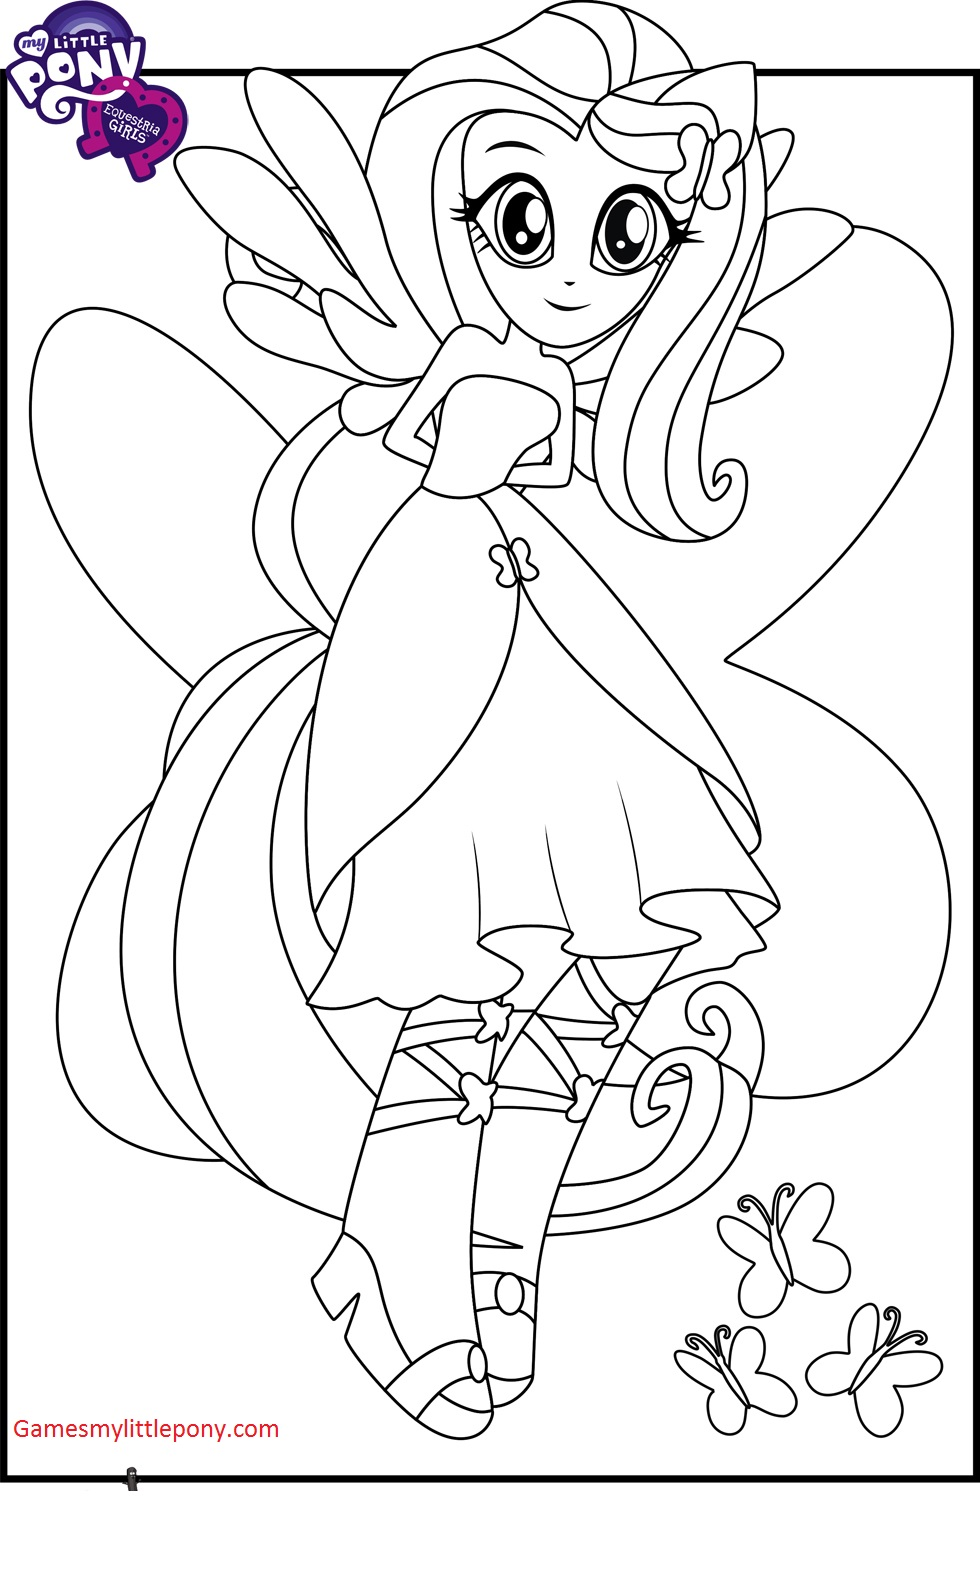 Equestria Girls Fluttershy Coloring Page My Little Pony Coloring